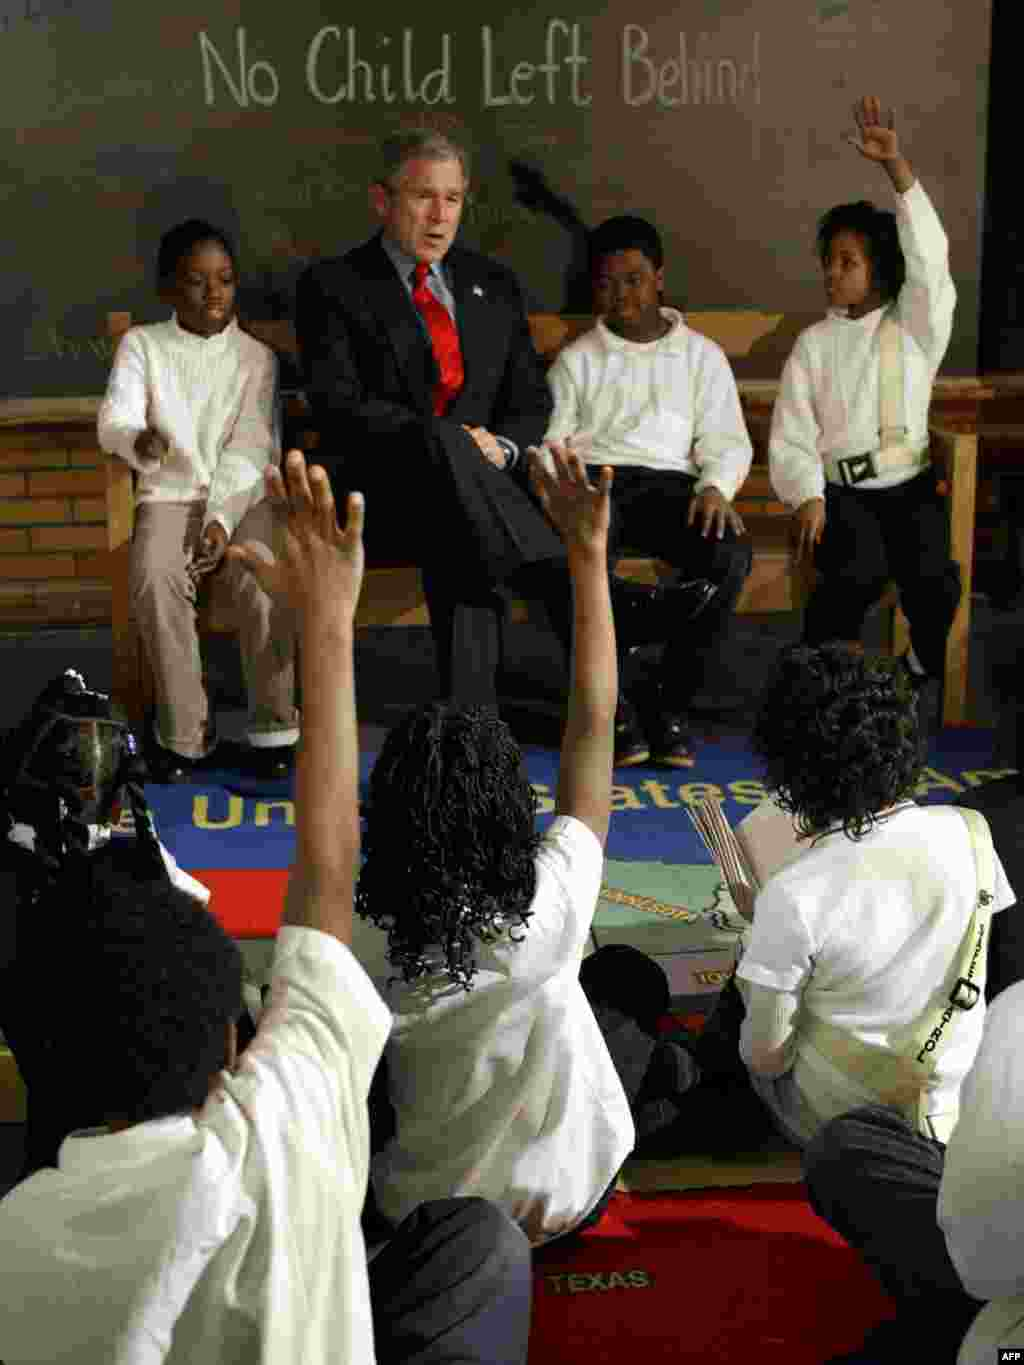 "'No Child Left Behind' education law - U.S. President George W. Bush sits with students Khadijah McCainn (left), Damien Goolsby (center), and Darlet Horton (right) as he talks to students on the anniversary of the ""No Child Left Behind Act"" on January 5, 2004, at Pierre Laclede Elementary School in St. Louis, Missouri."